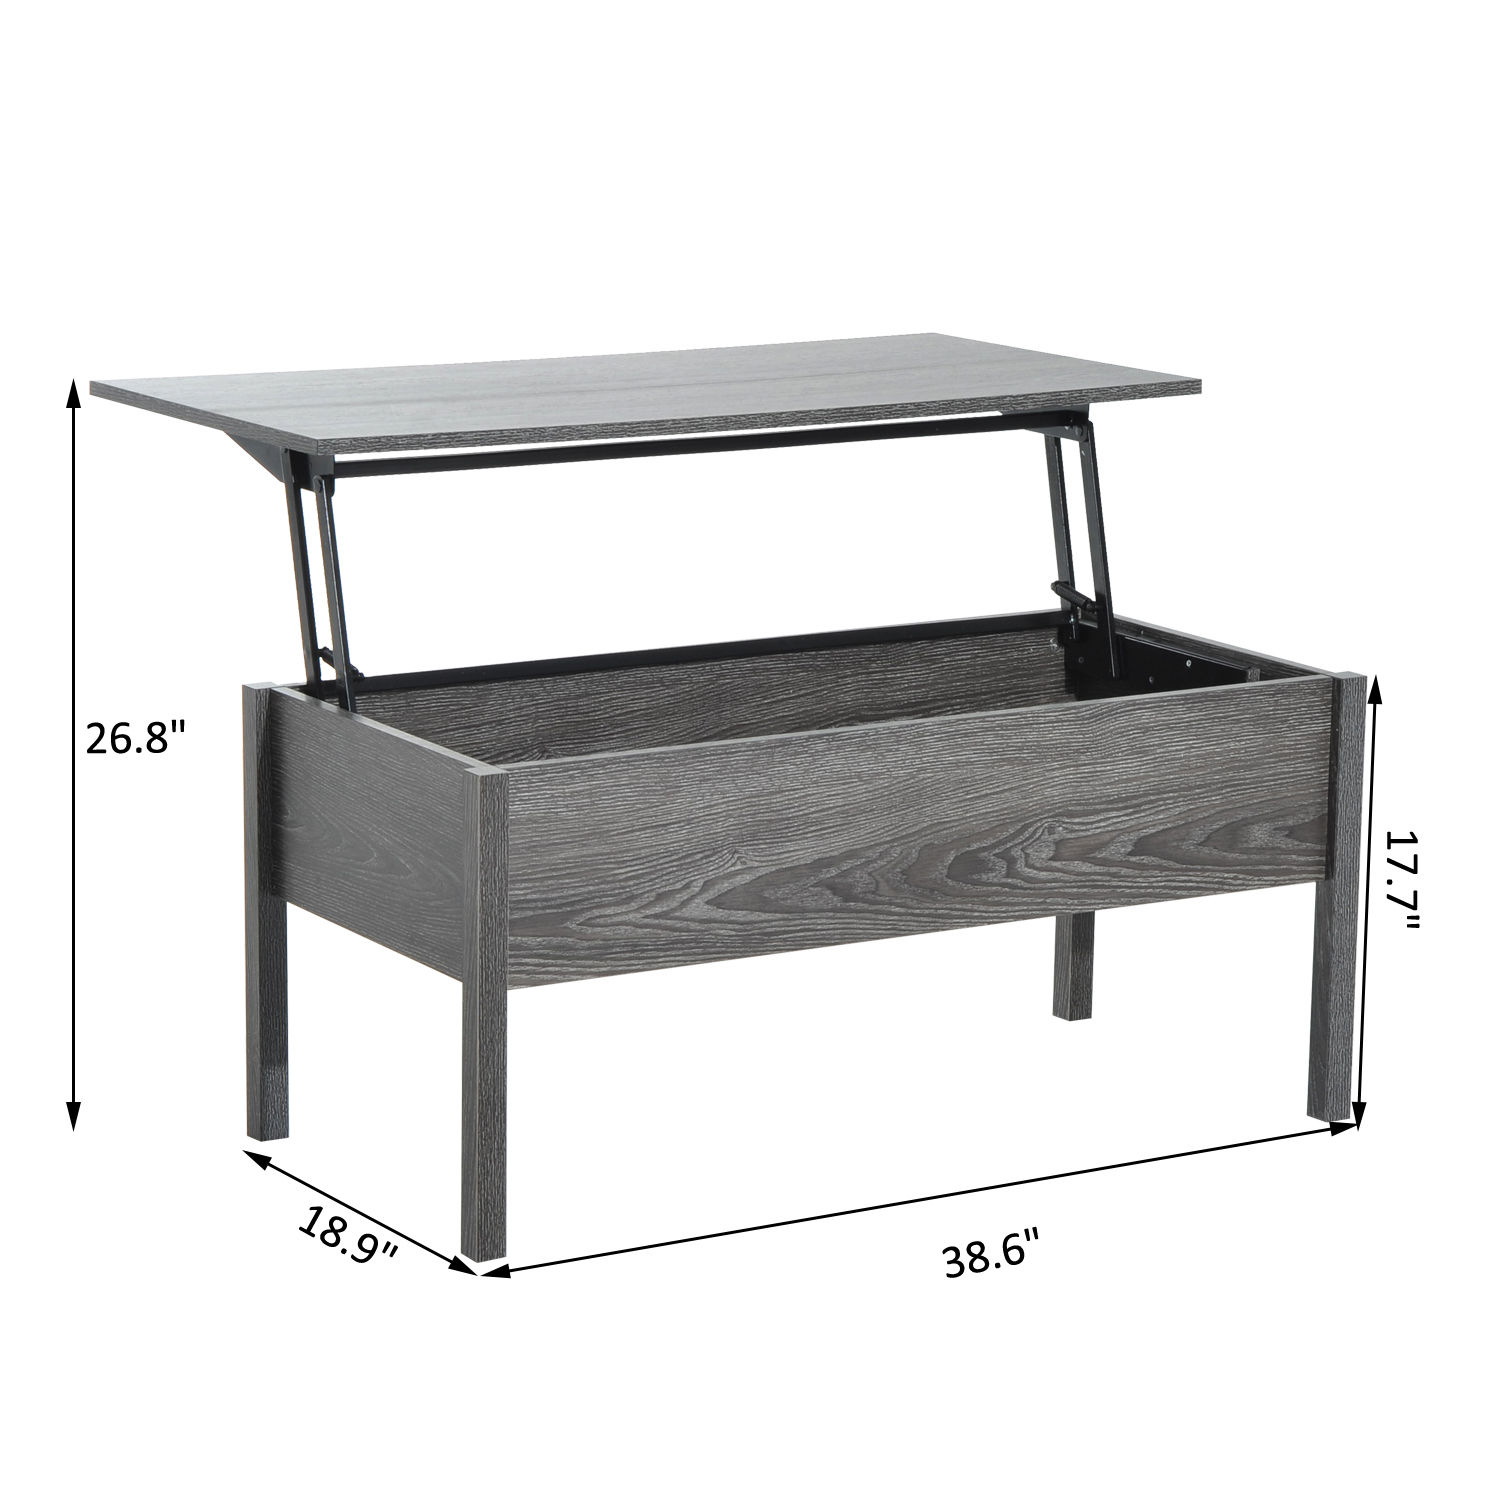 HOMCOM-Wood-Coffee-Table-End-Table-With-Lift-Top-Storage-Shelf-Home-Furniture thumbnail 13